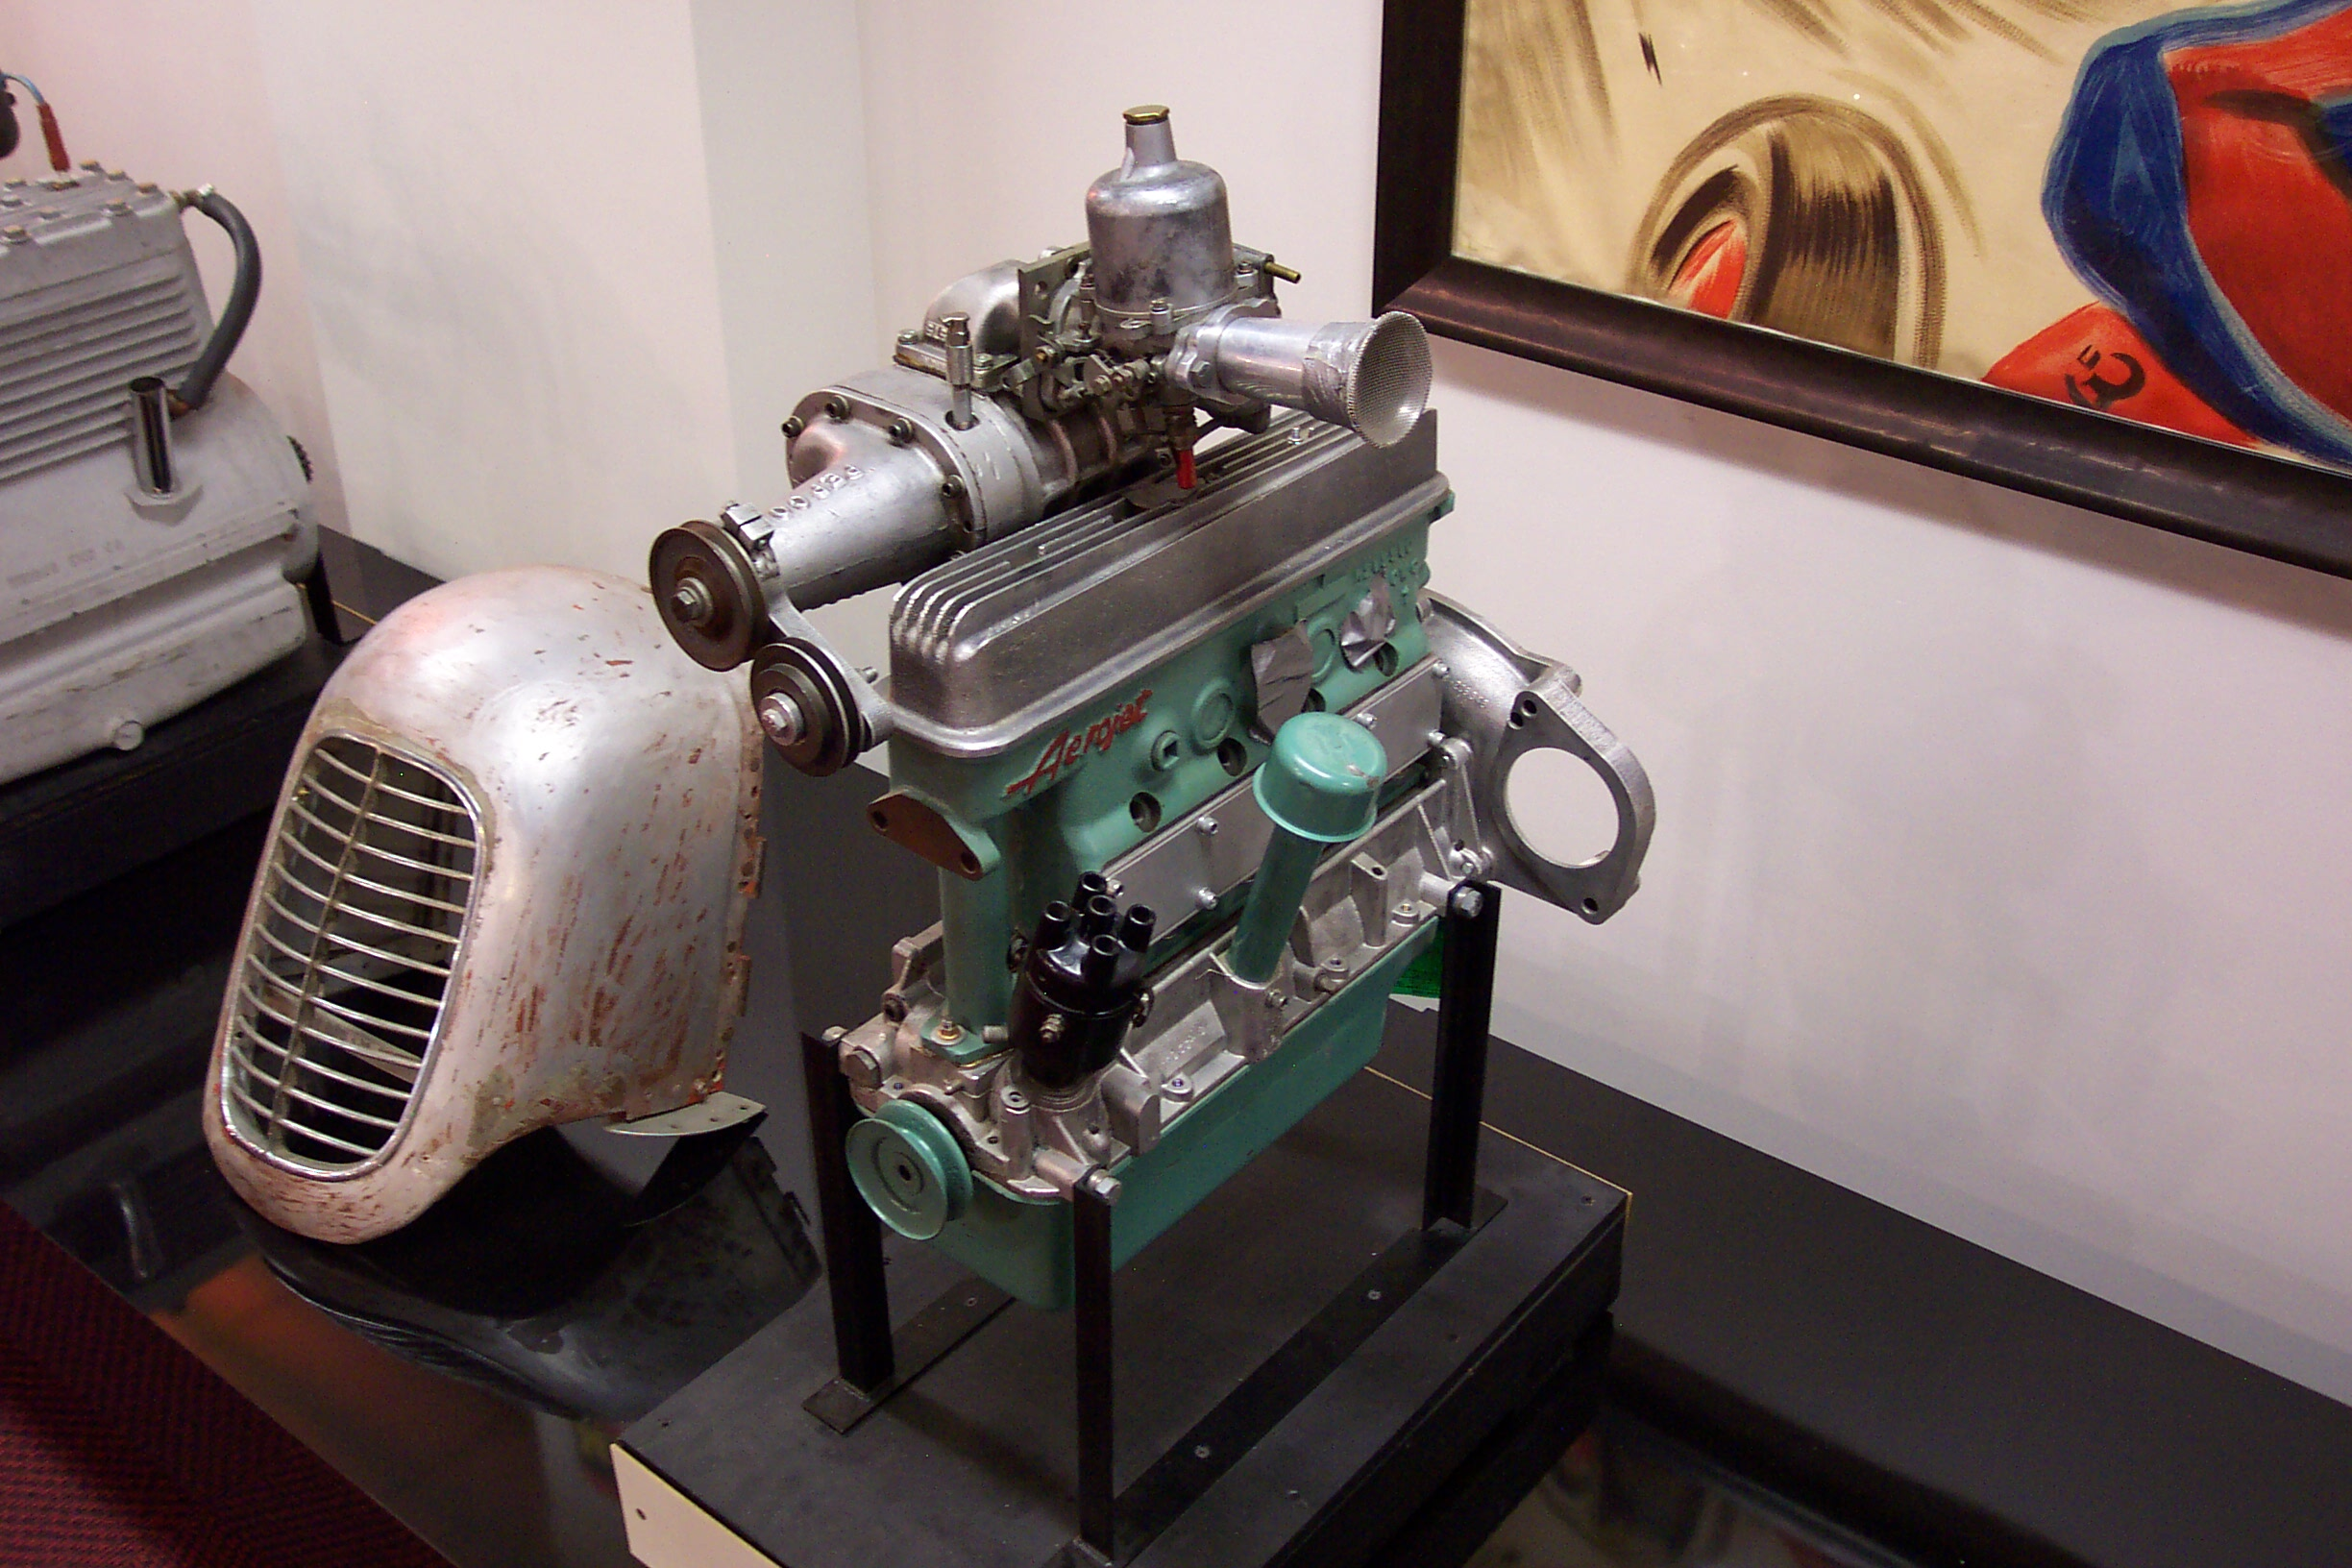 racing parts: racing parts motor crosley engine diagram engine engine diagram